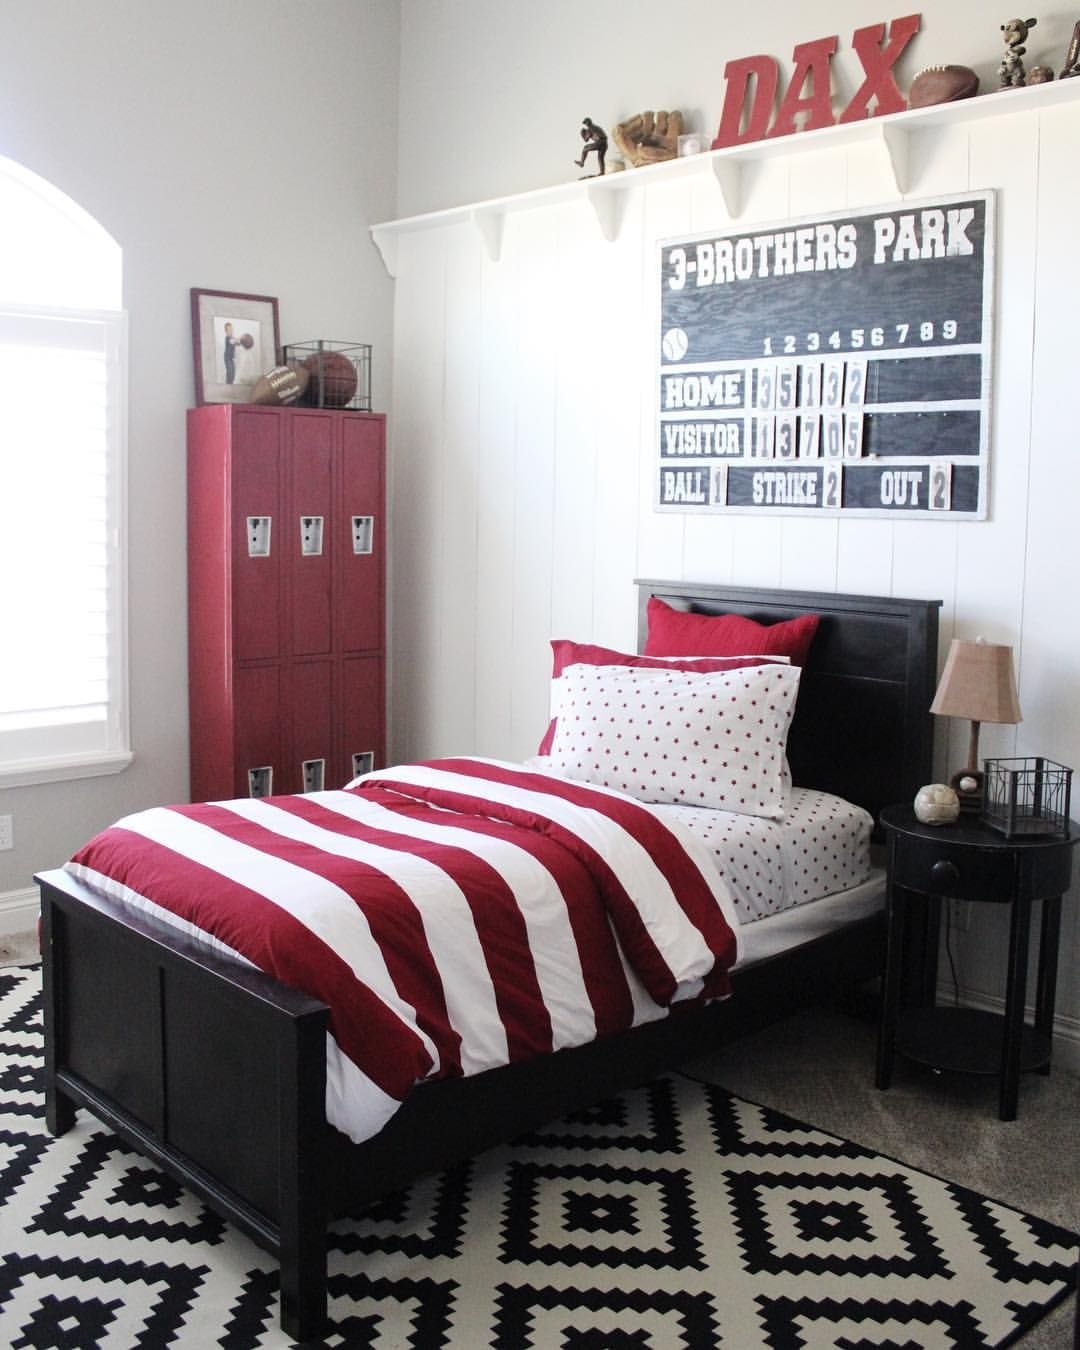 Bedroomsports.com Part - 18: Baseball bedroom. Sports bedroom. Vintage scoreboard. DIY